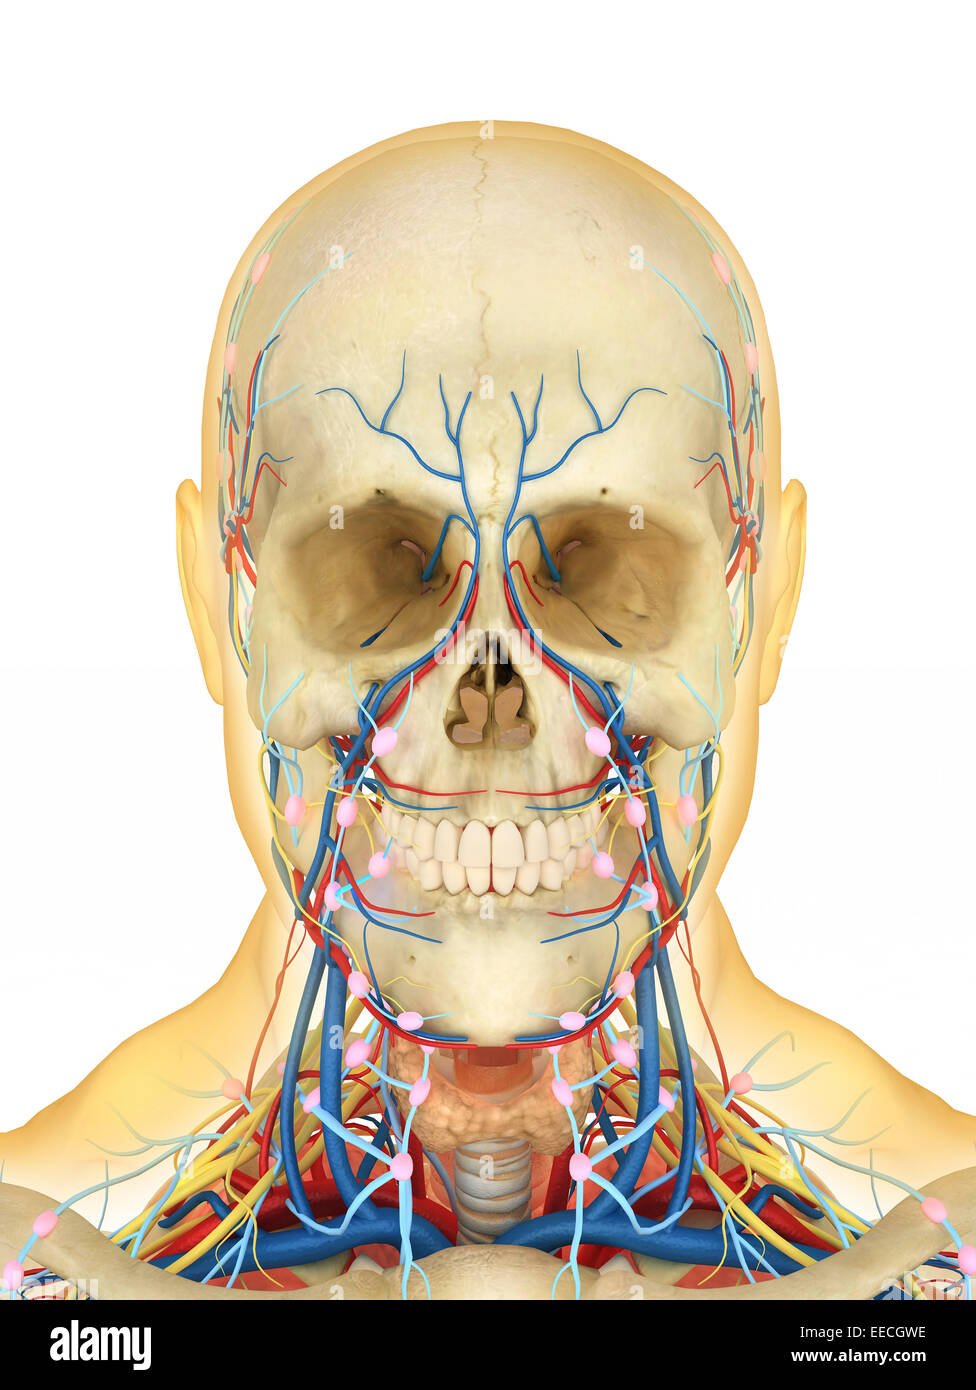 Human face and neck area with internal throat parts, nervous system ...